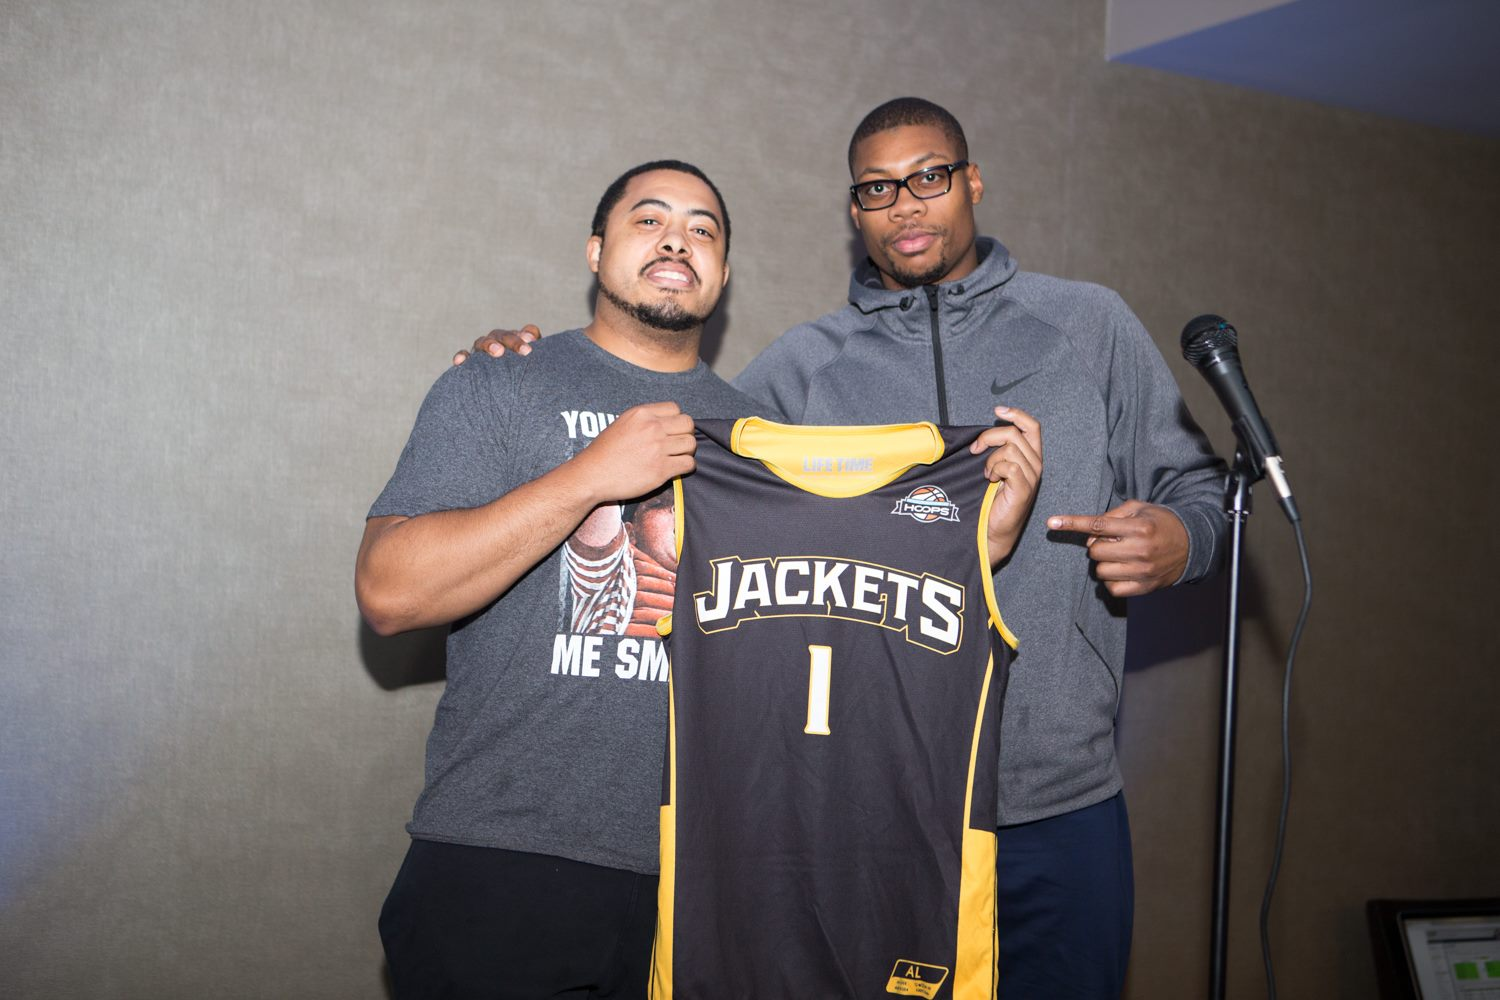 Sonny Young-Graves (left) drafting Ernest Clayton to the Yellow Jackets. Young-Graves will be the first-ever player-GM in the Dream League this season.